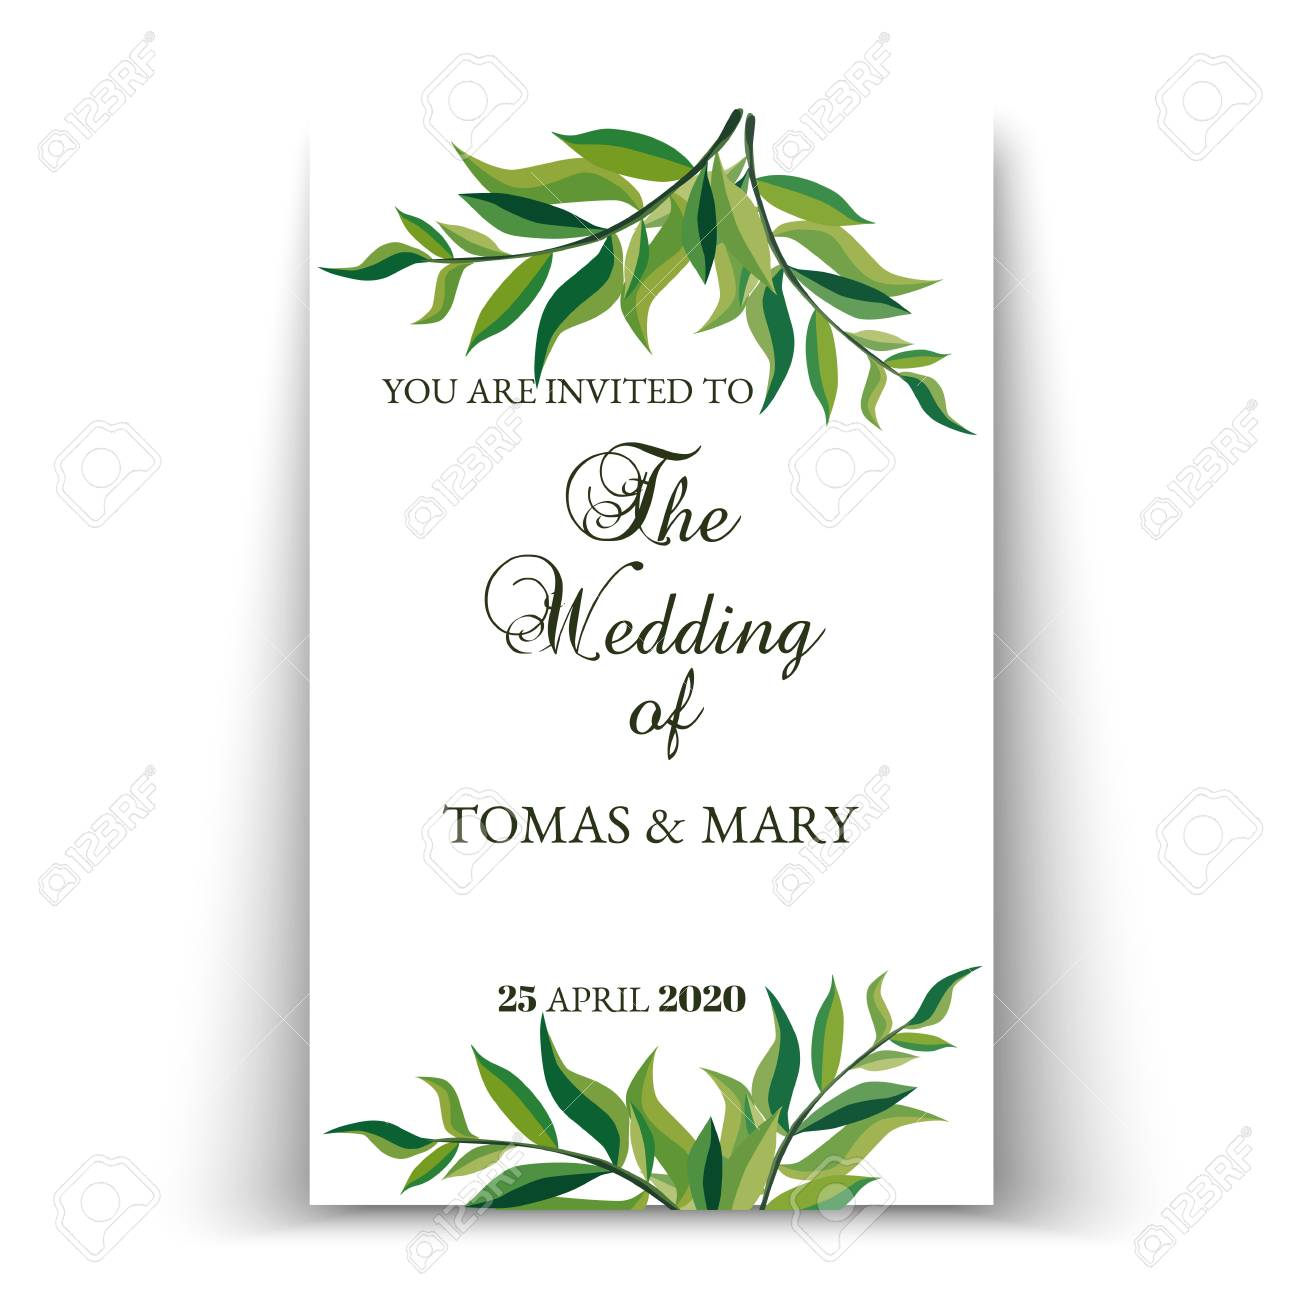 Wedding Invitation Template.Greenery Wedding Invitation Template Printable Wedding Invites